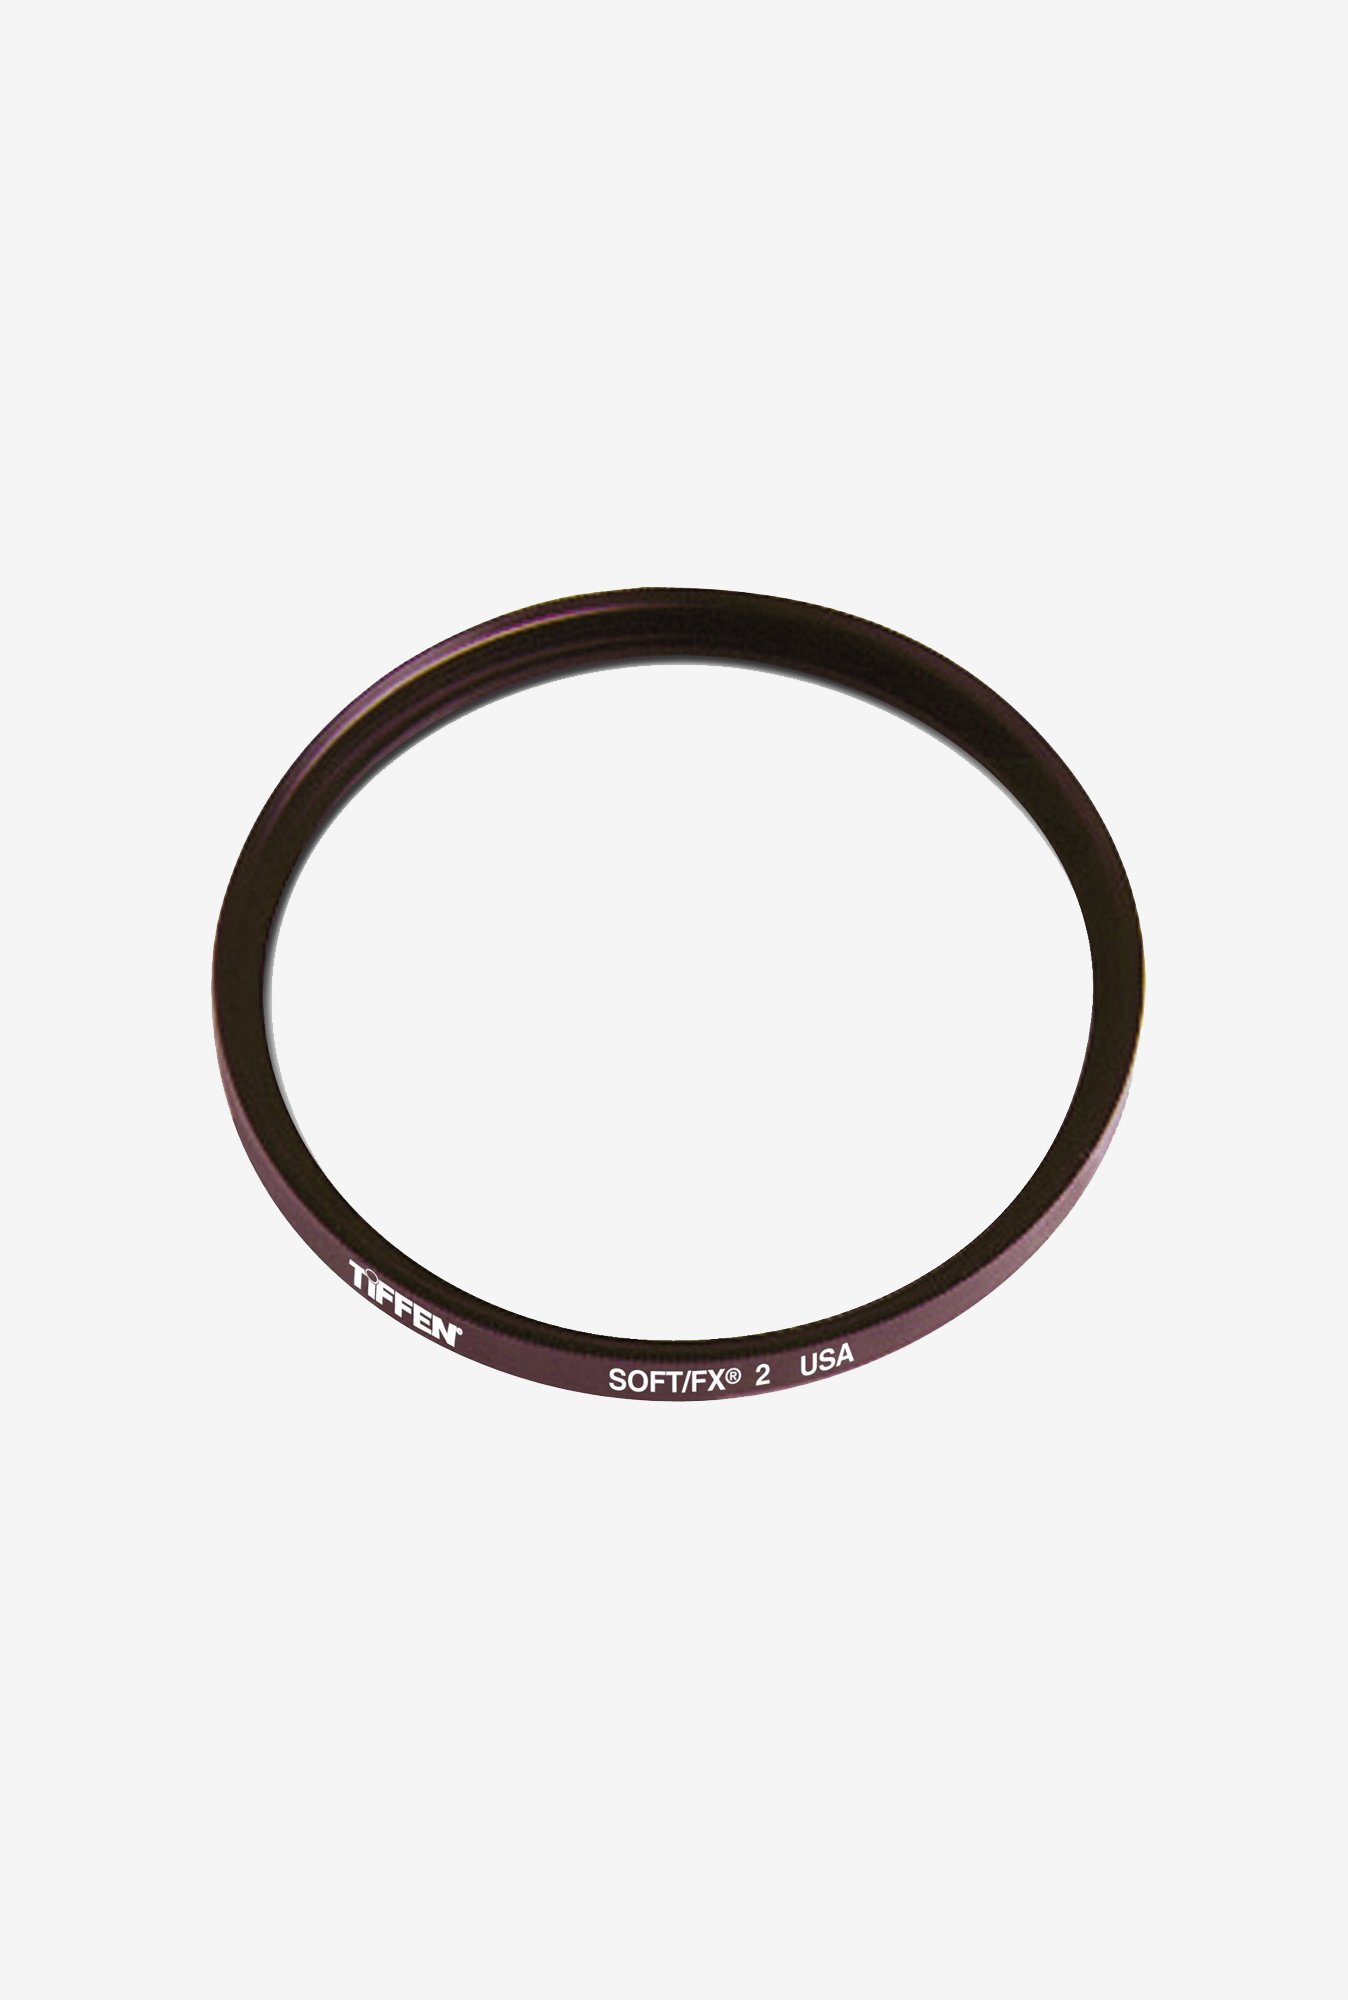 Tiffen 58SFX2 58mm Soft/FX 2 Filter (Black)